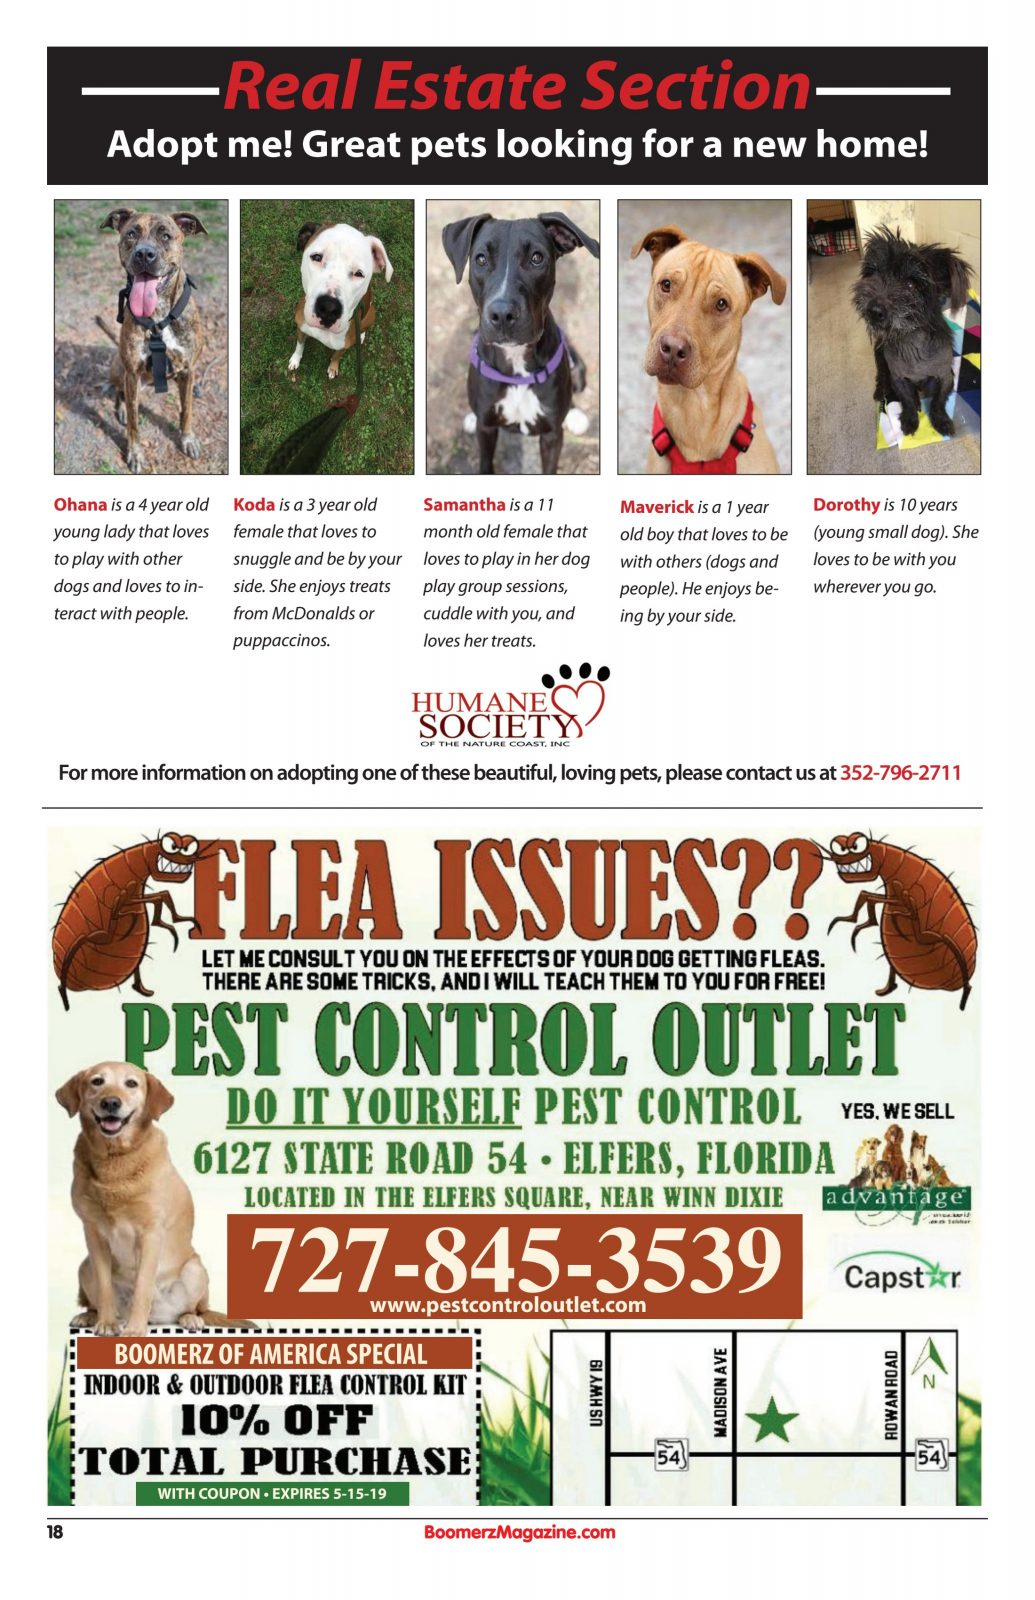 Pest Control Outlet - Humane Society of the Nature Coast